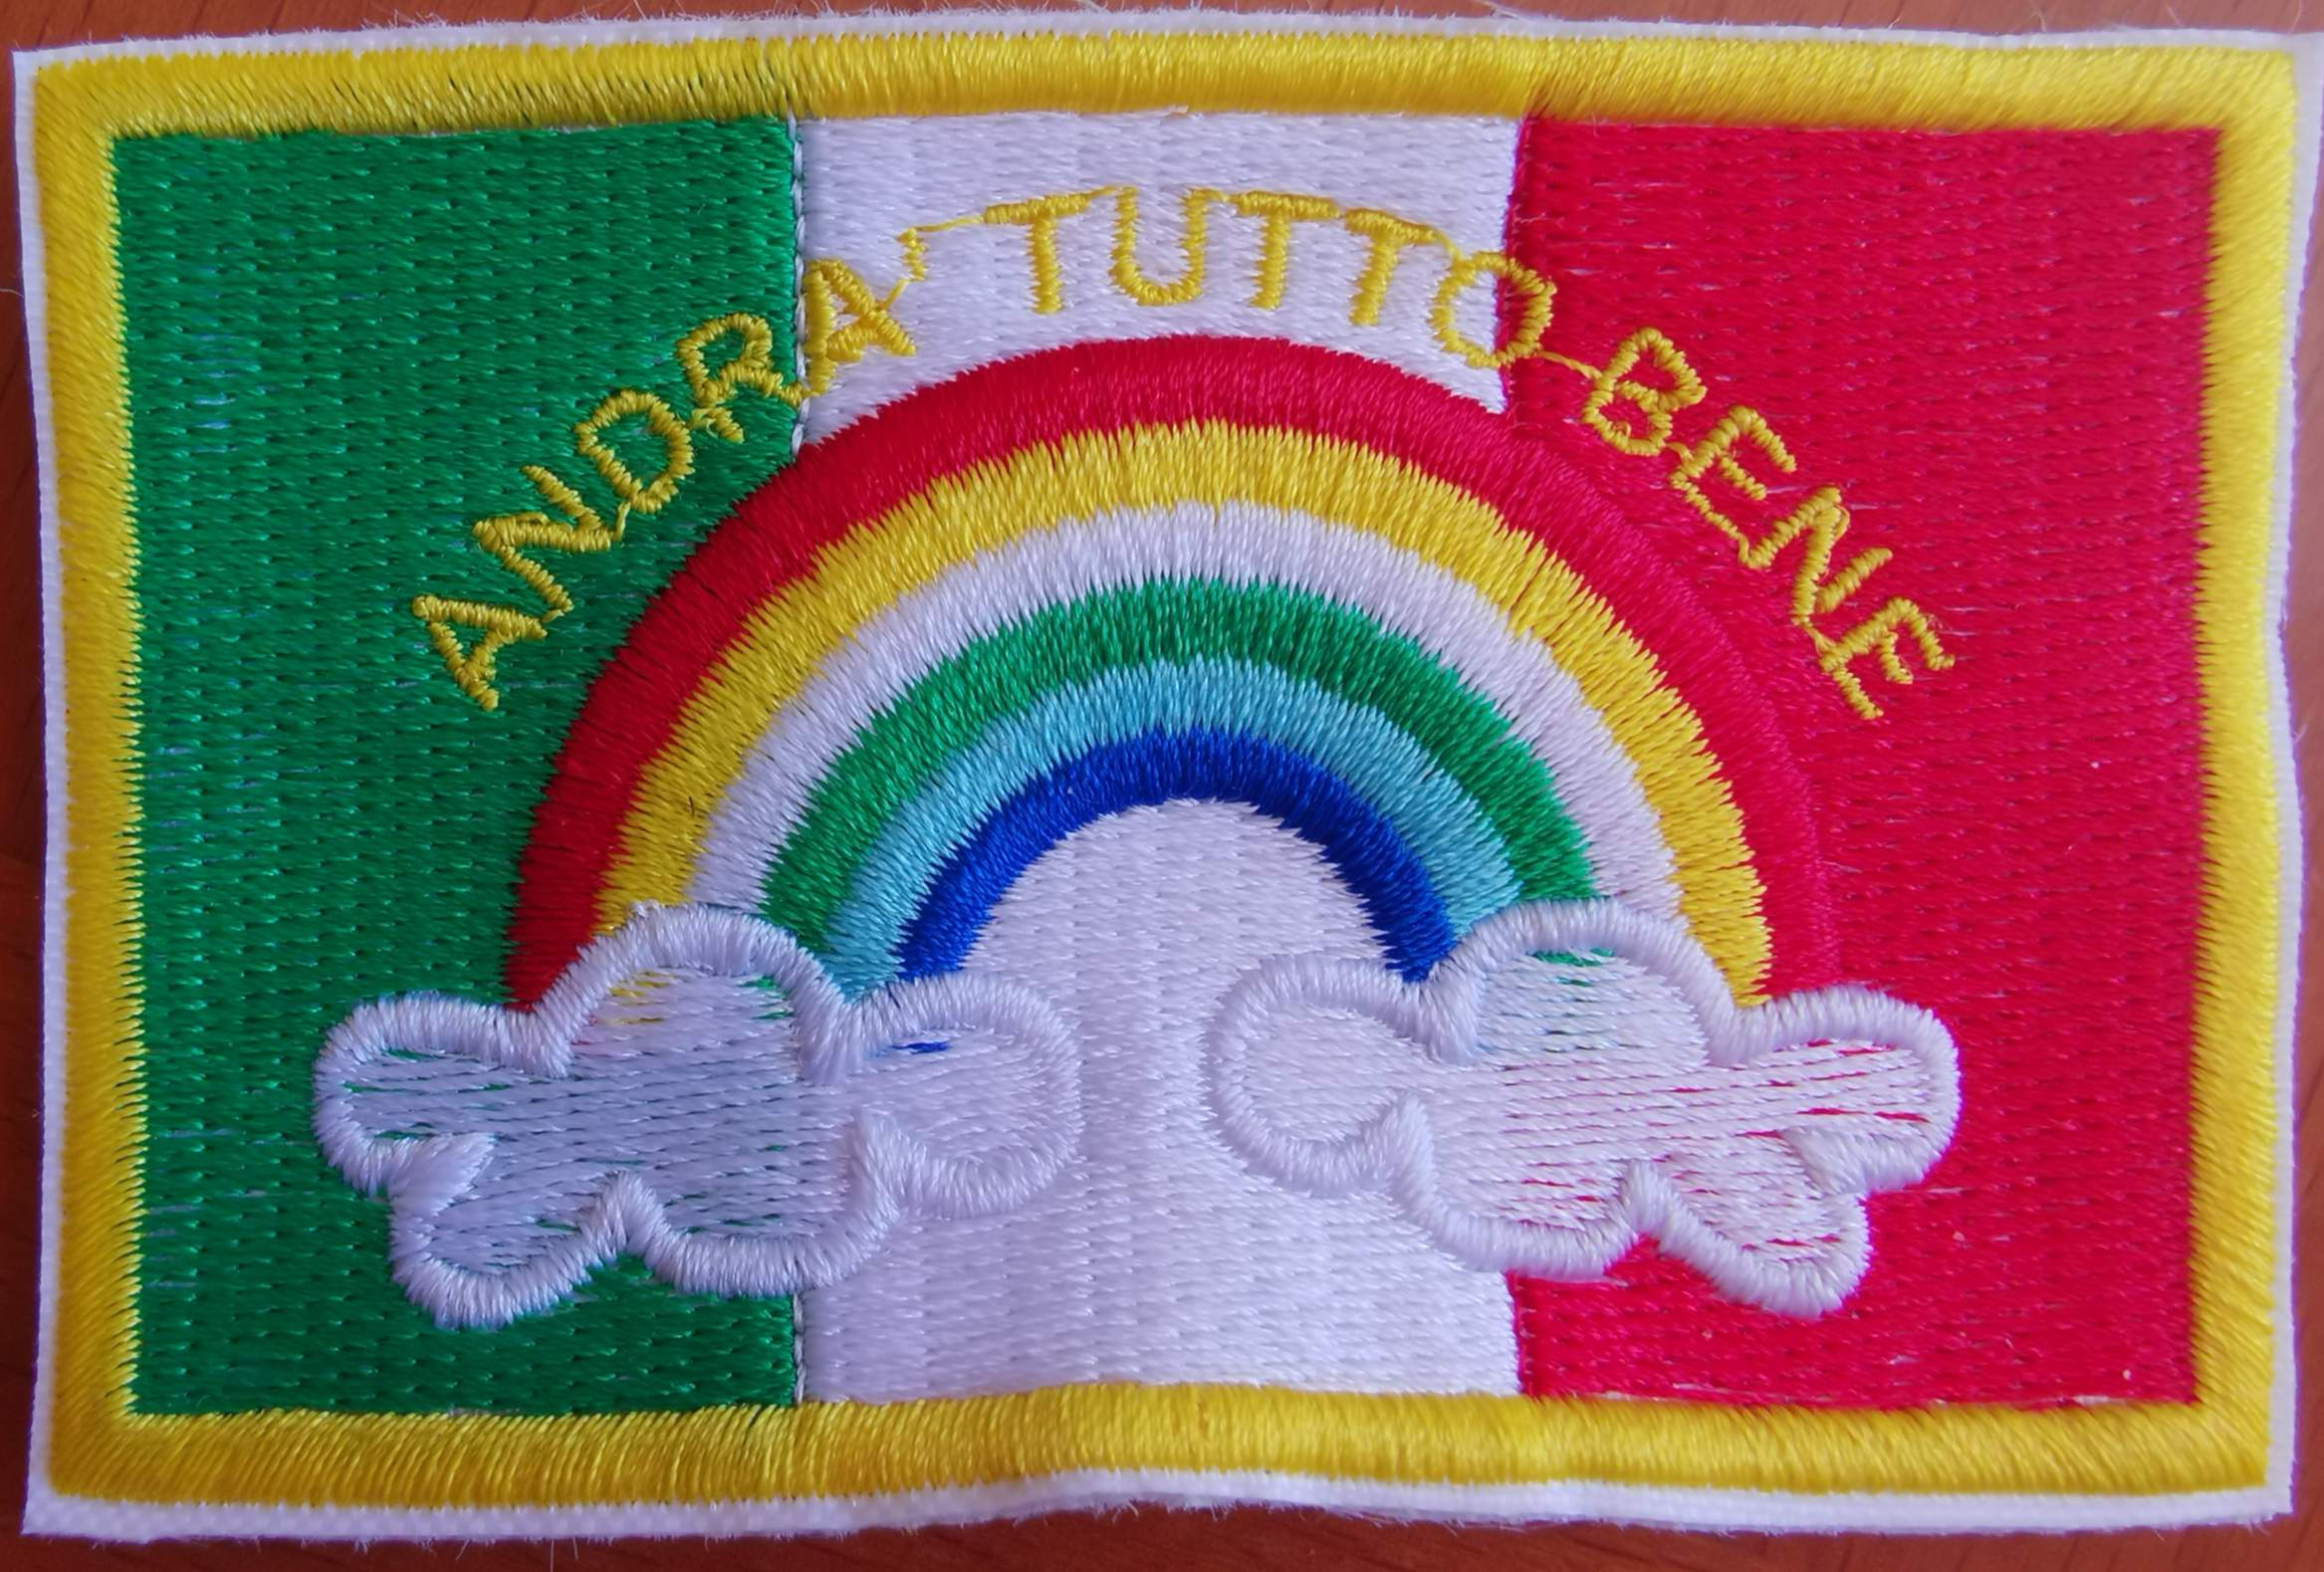 Patch ANDRA' TUTTO BENE